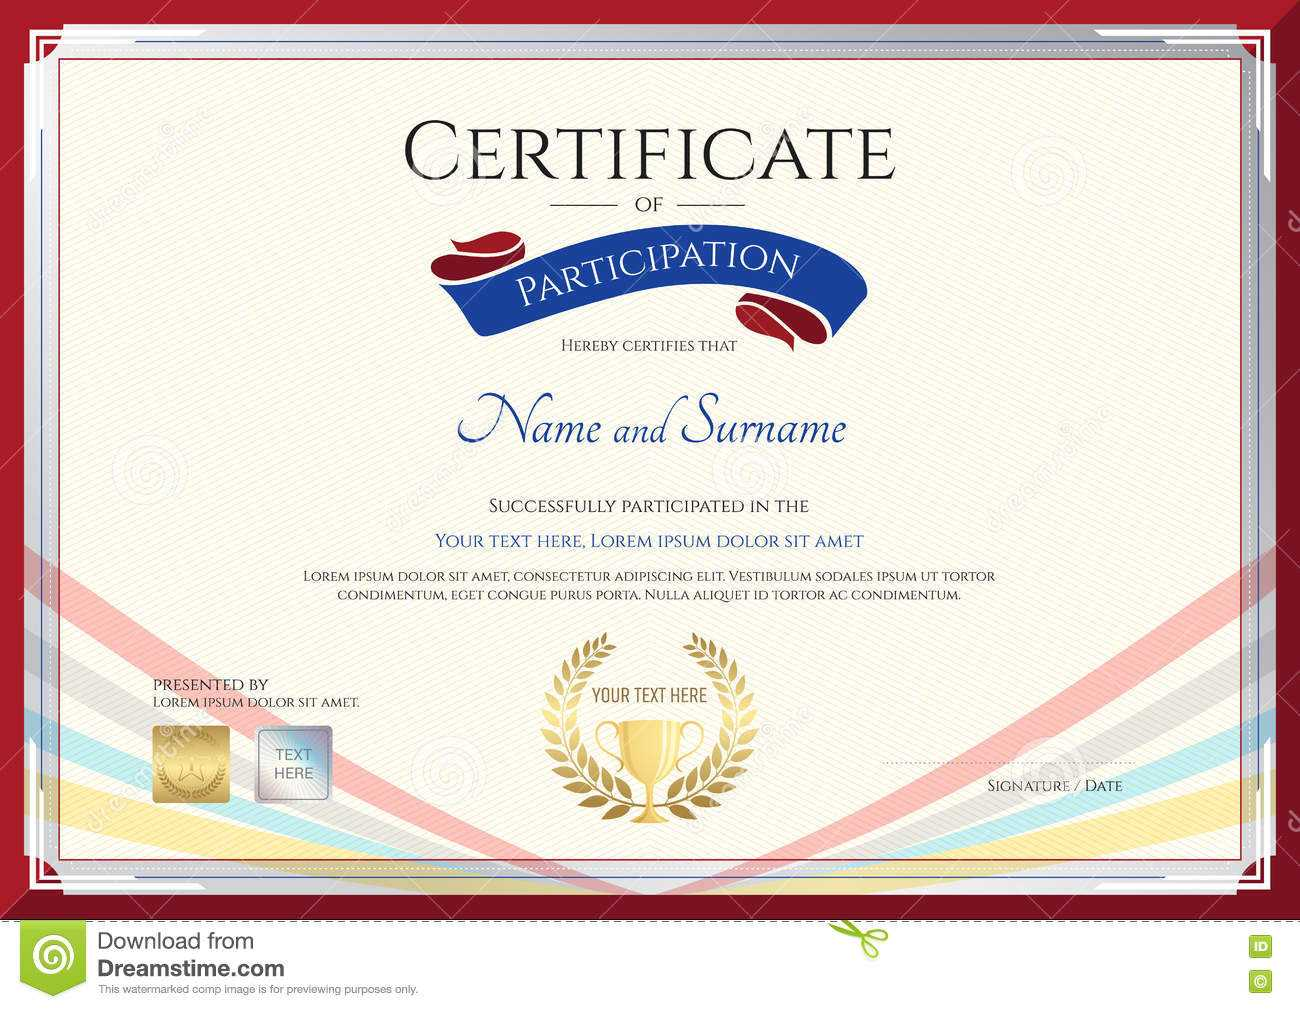 Certificate Template For Achievement, Appreciation Or Inside International Conference Certificate Templates